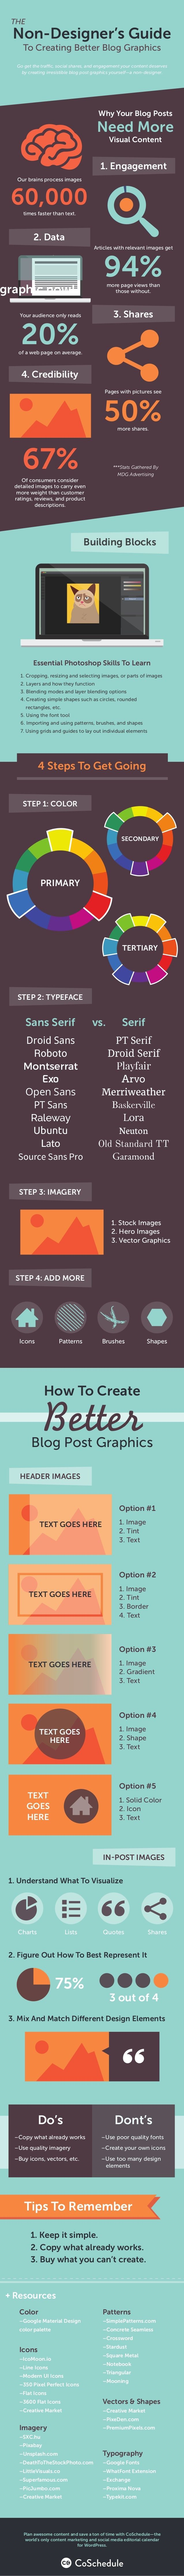 Graphic Design Tips for Bloggers: How To Create Images That Boost Blog Post Shares [Infographic]